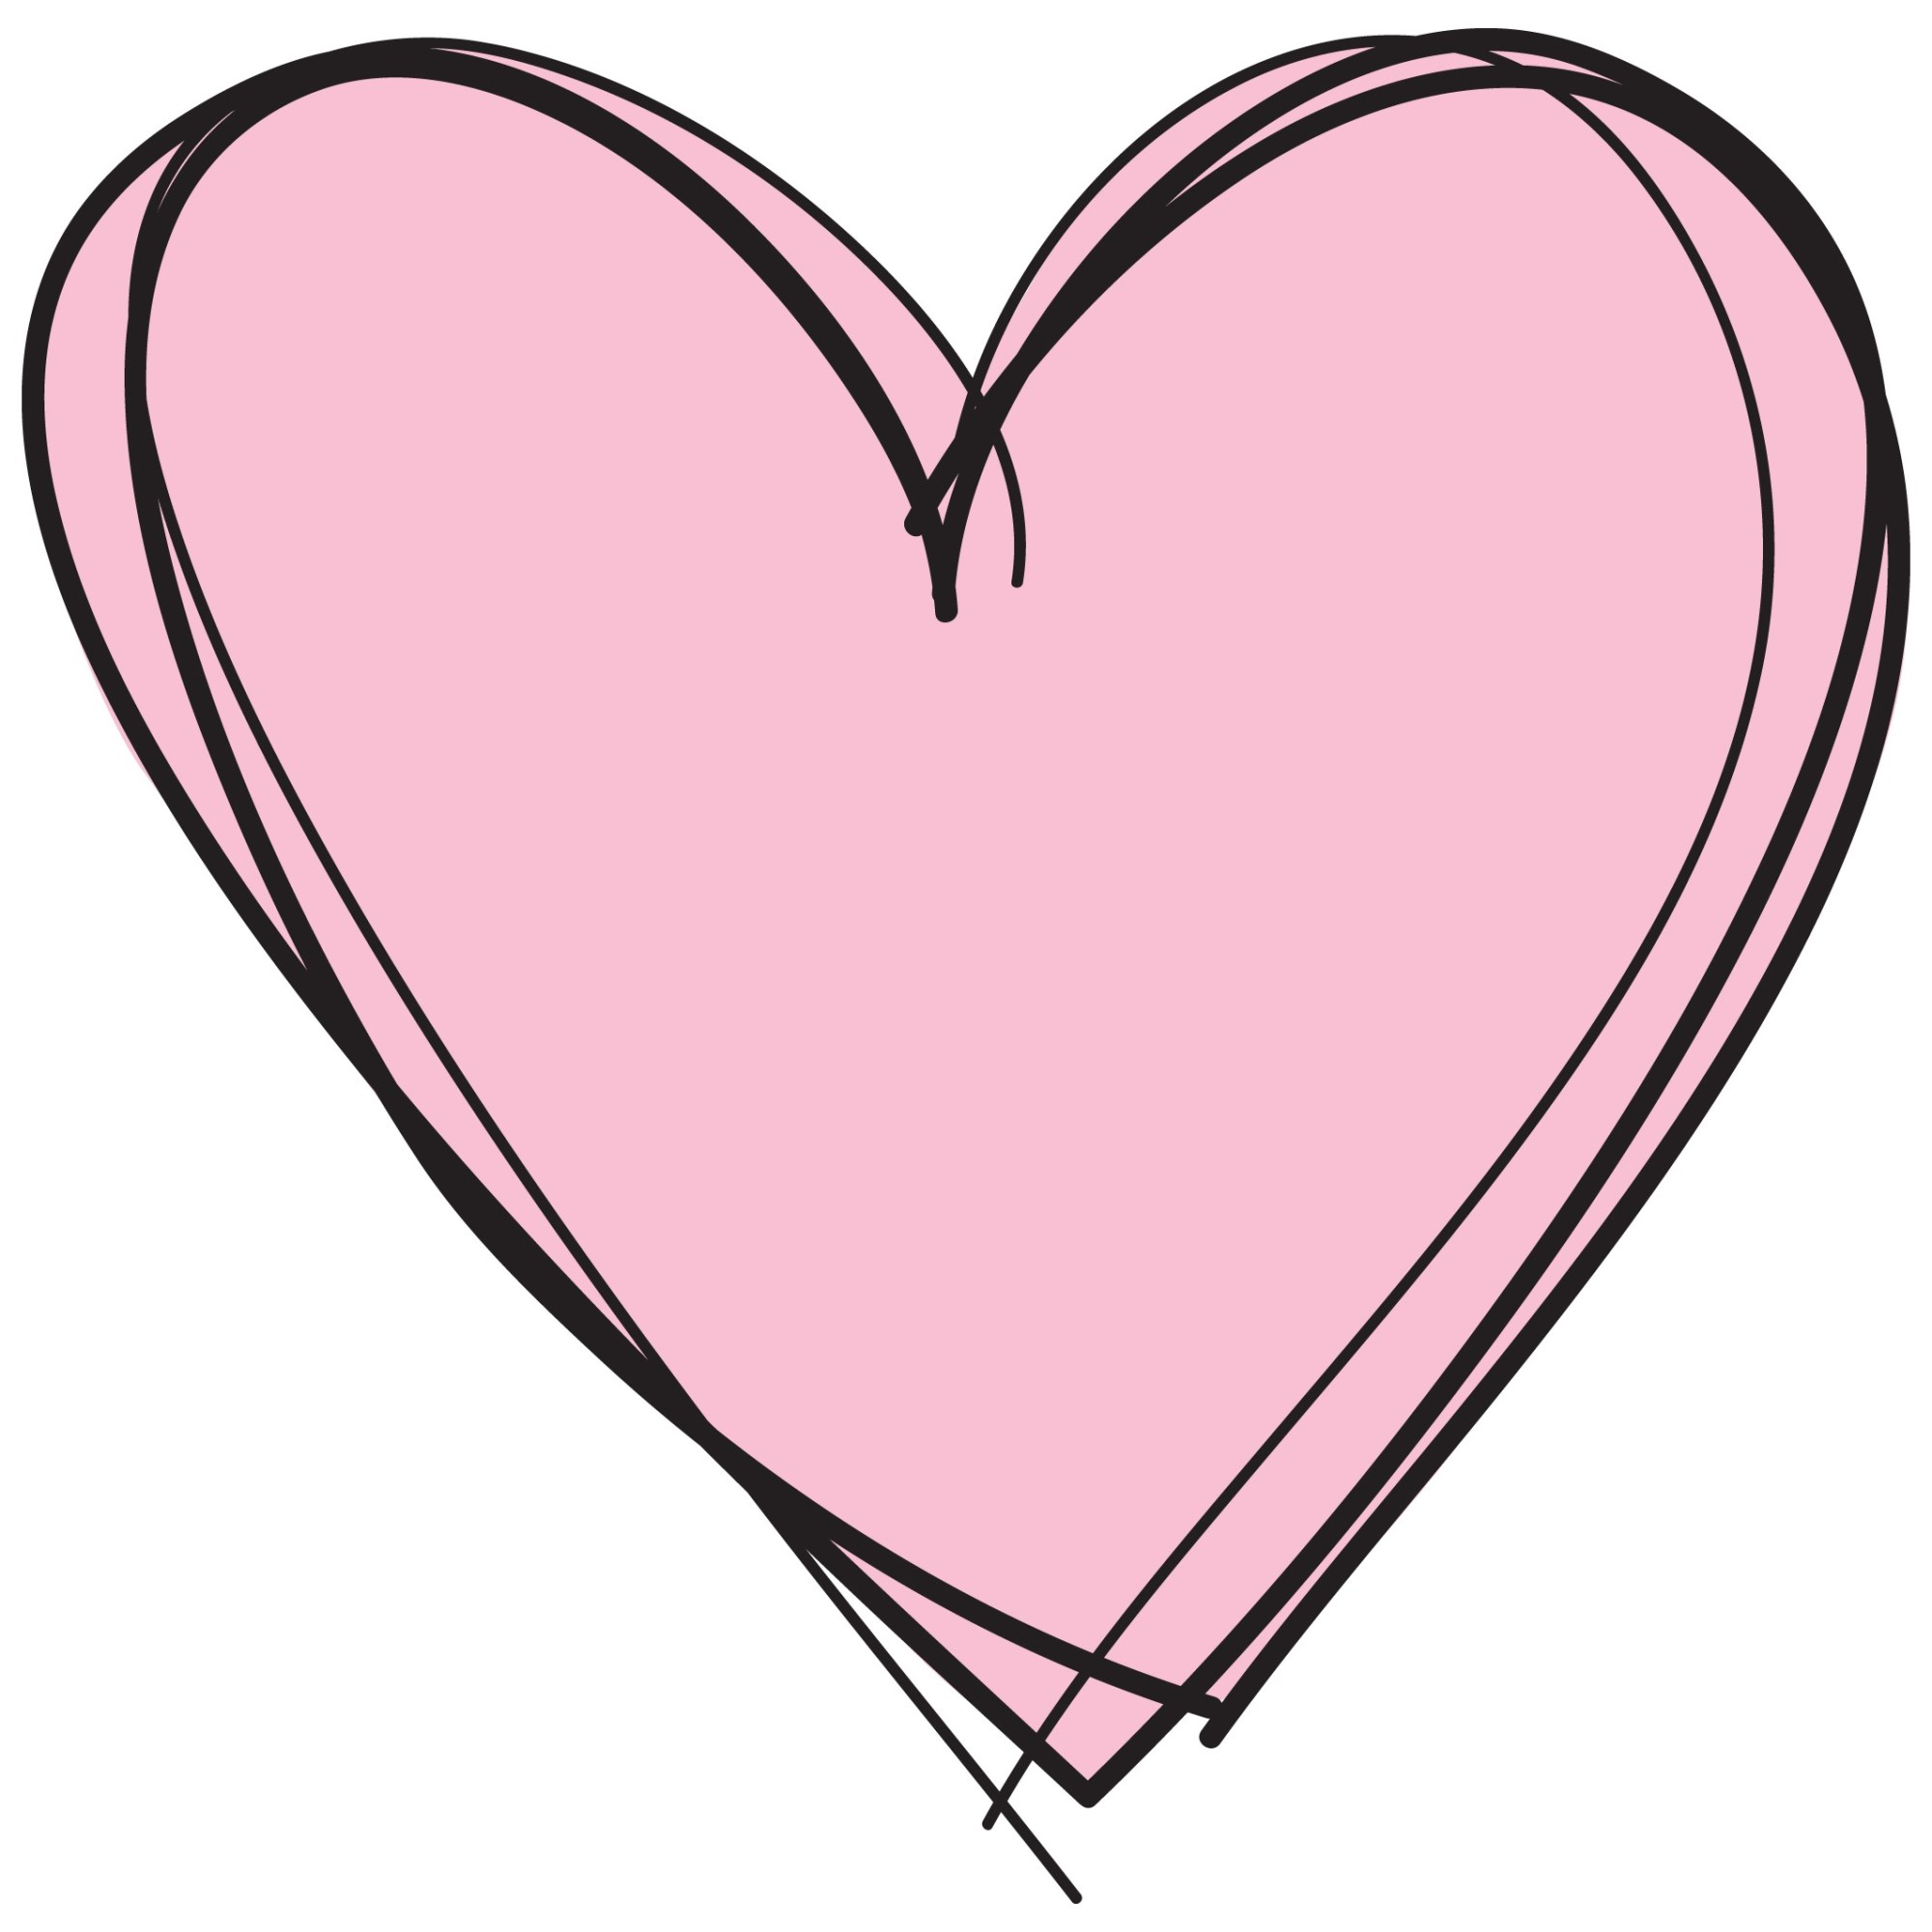 hight resolution of 2126x2126 cute pink heart clipart letters format